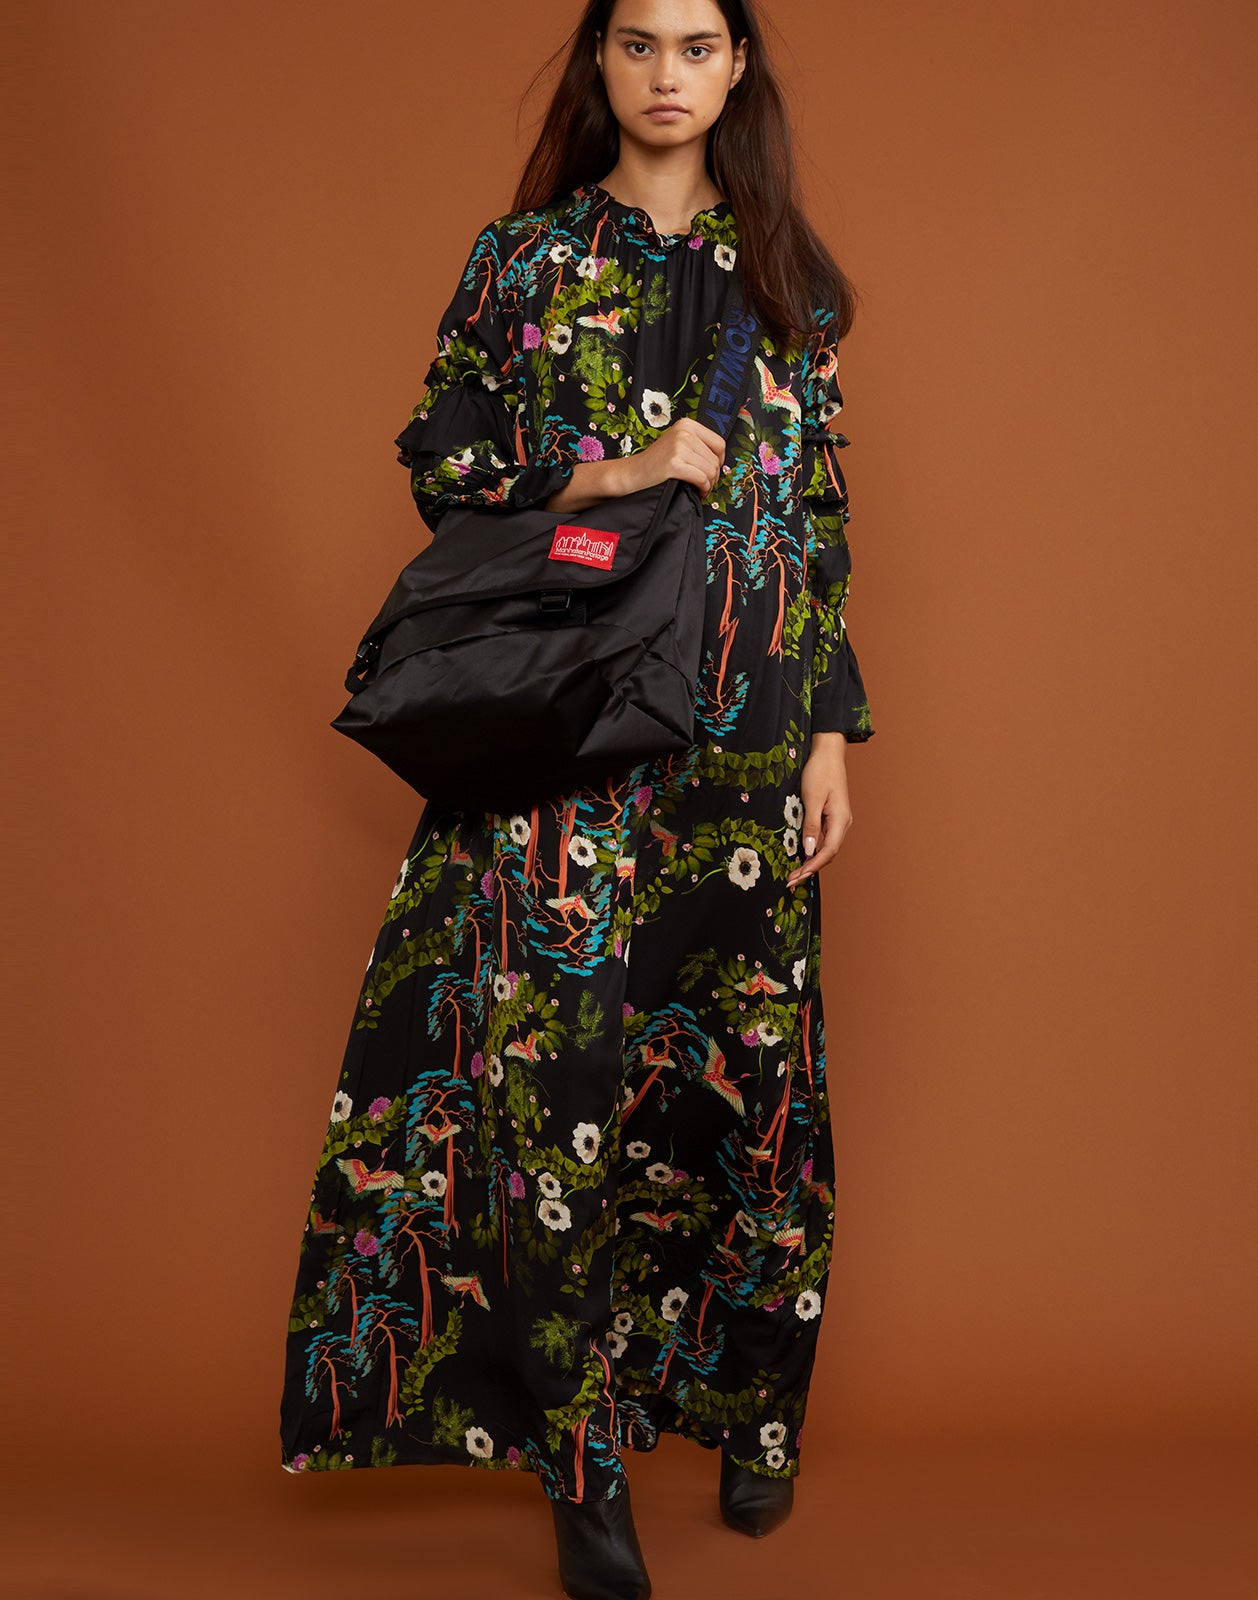 Front view of the Allegra dress and Manhattan Portage messenger bag in black satin.